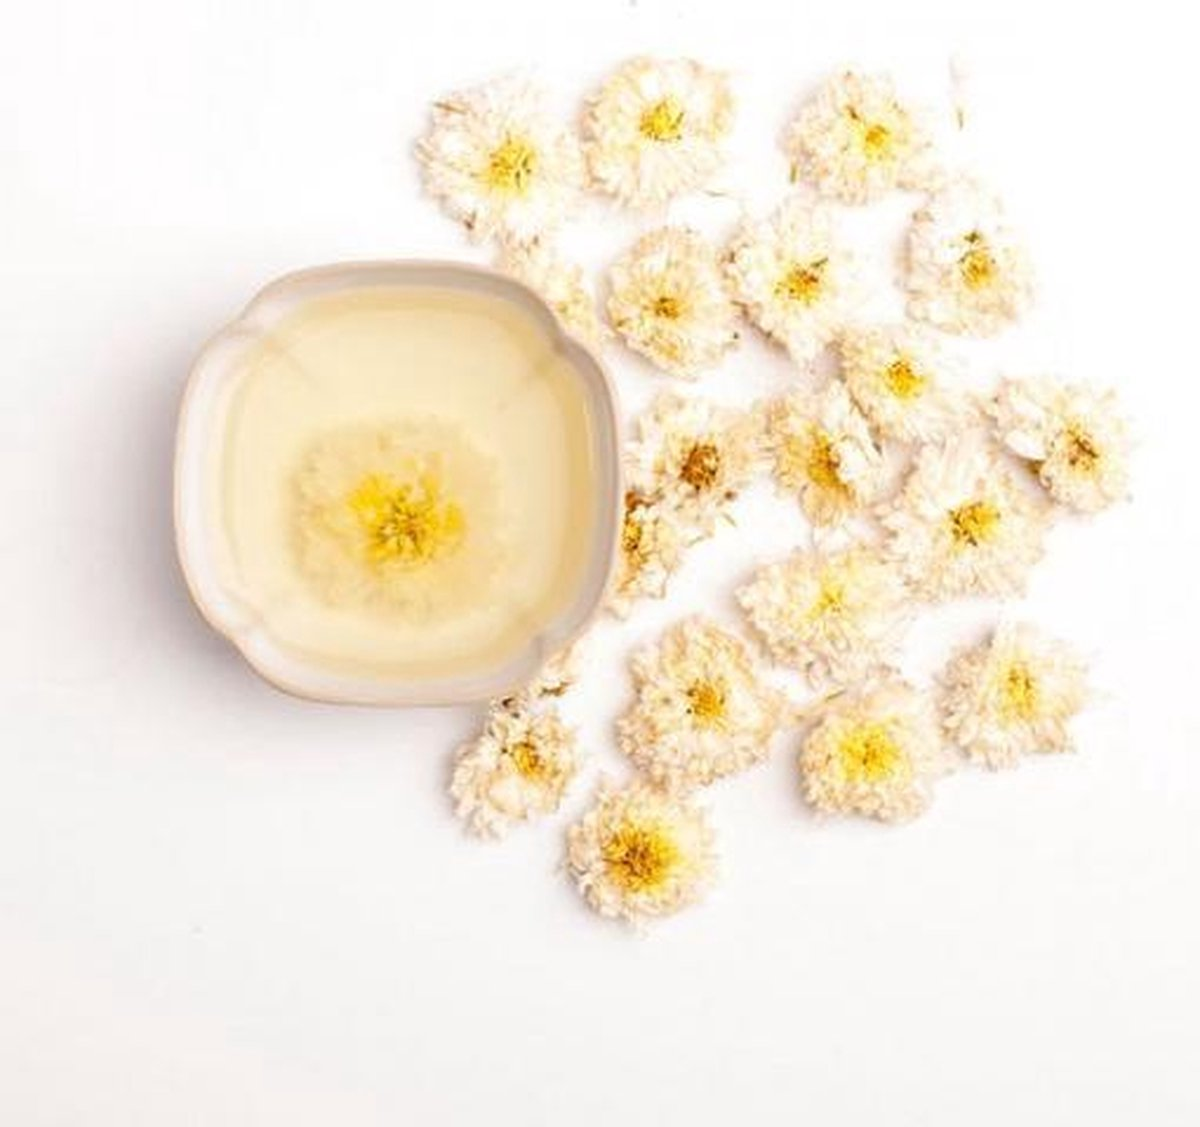 White Chrysanthemum Flower thee in Try Me zakje - Cups and Leafs